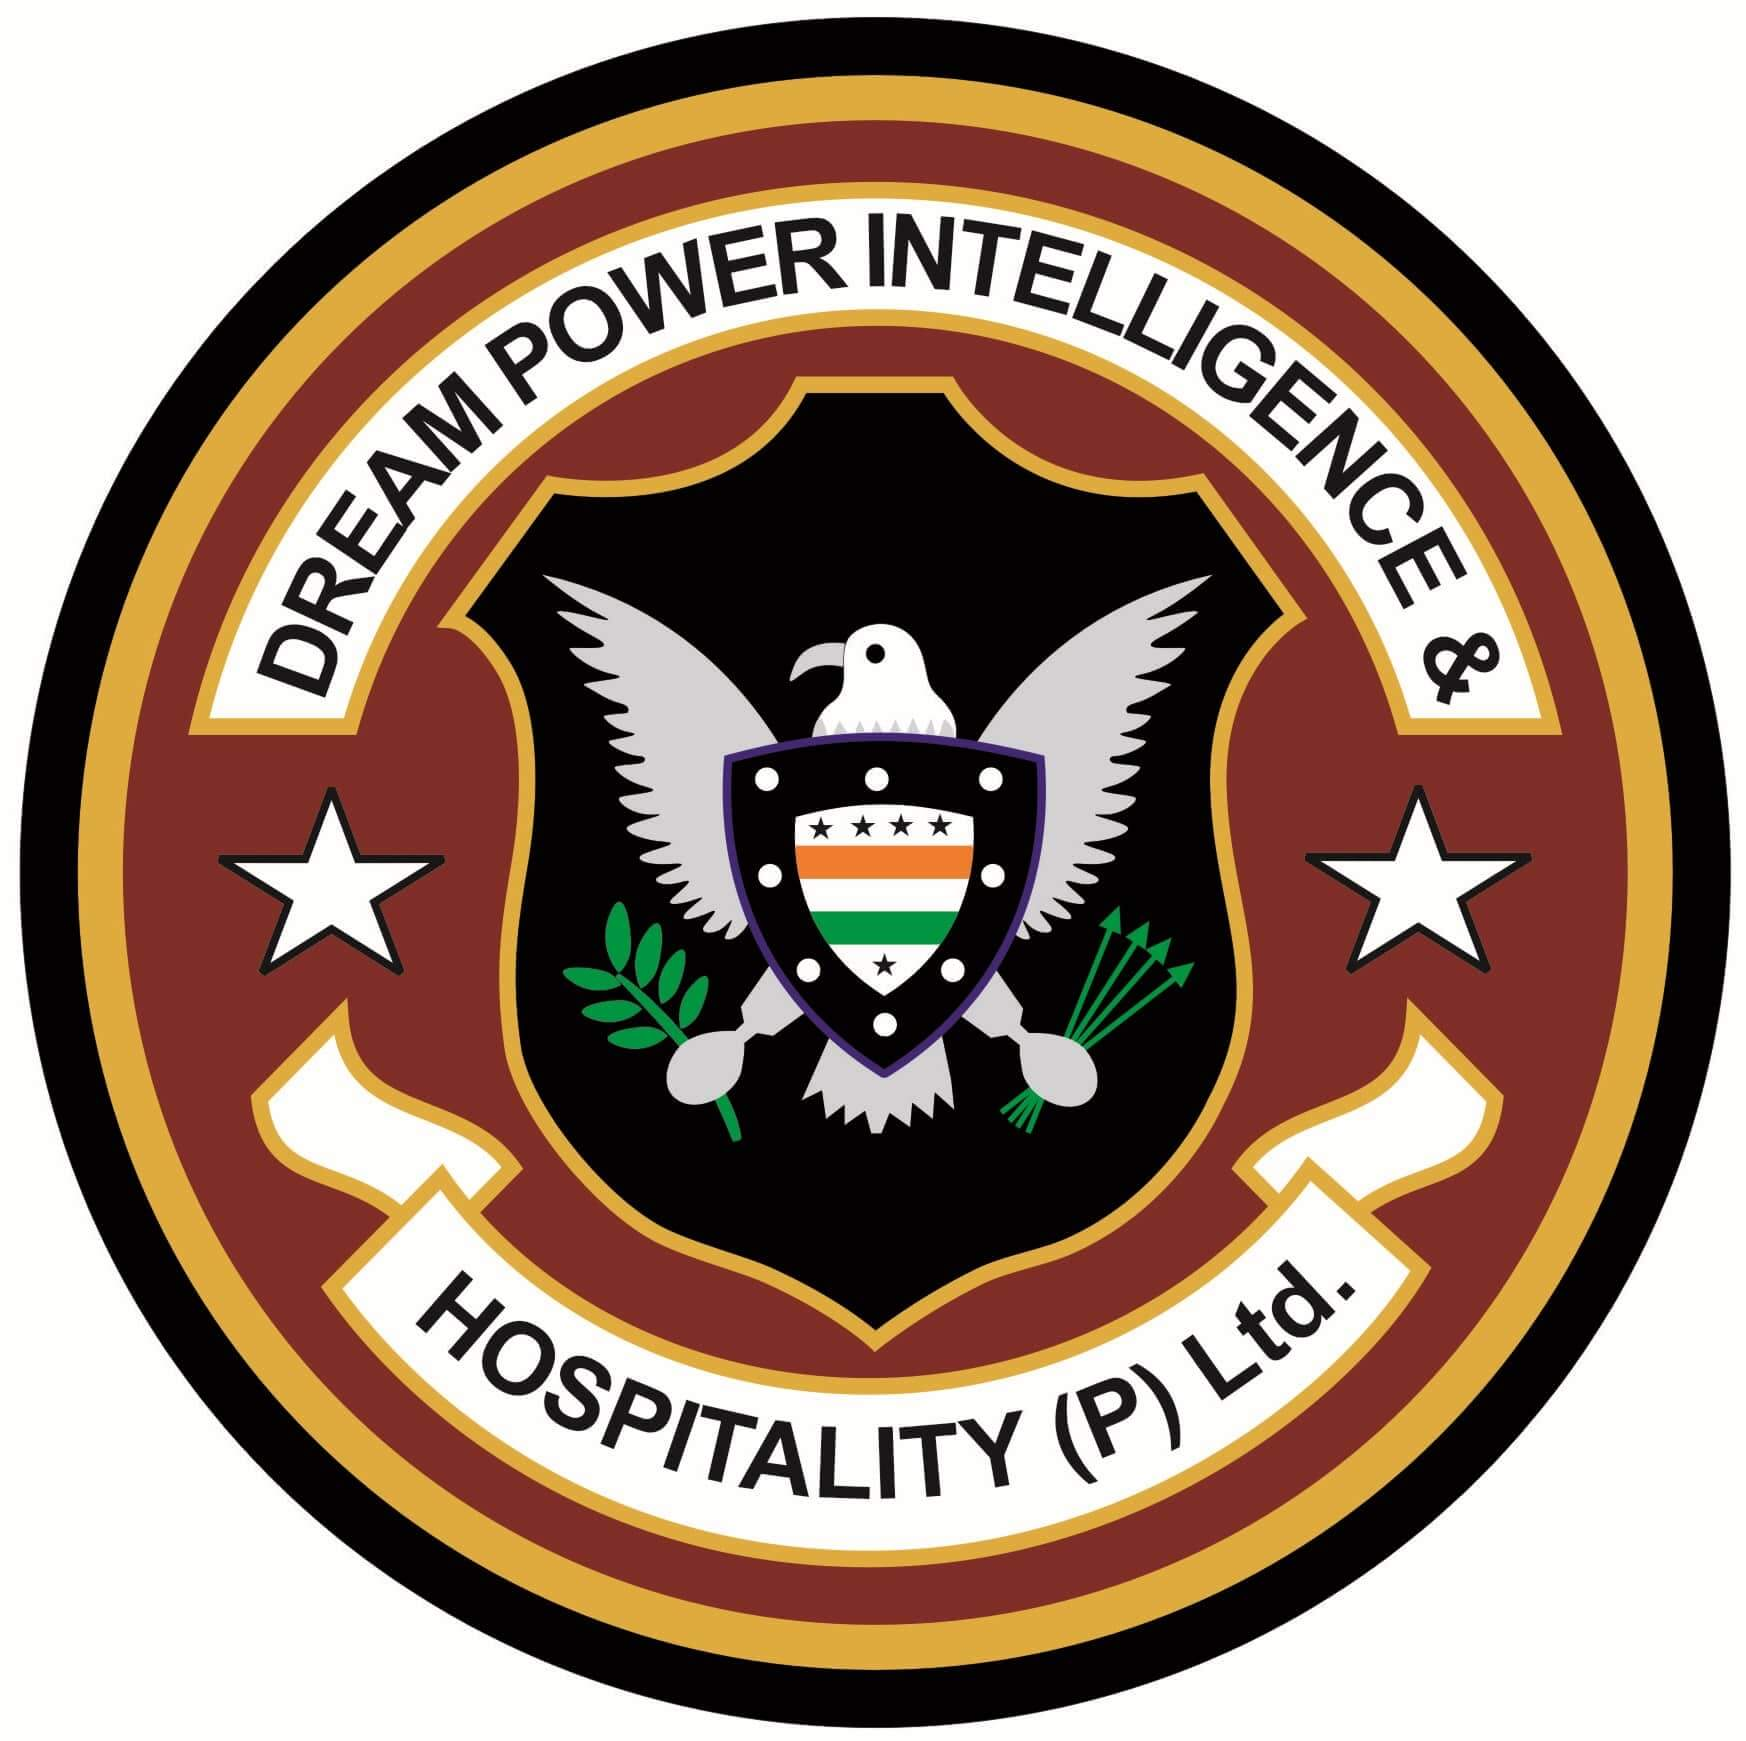 Dream Power Intelligence and Hospitality Pvt. ltd.